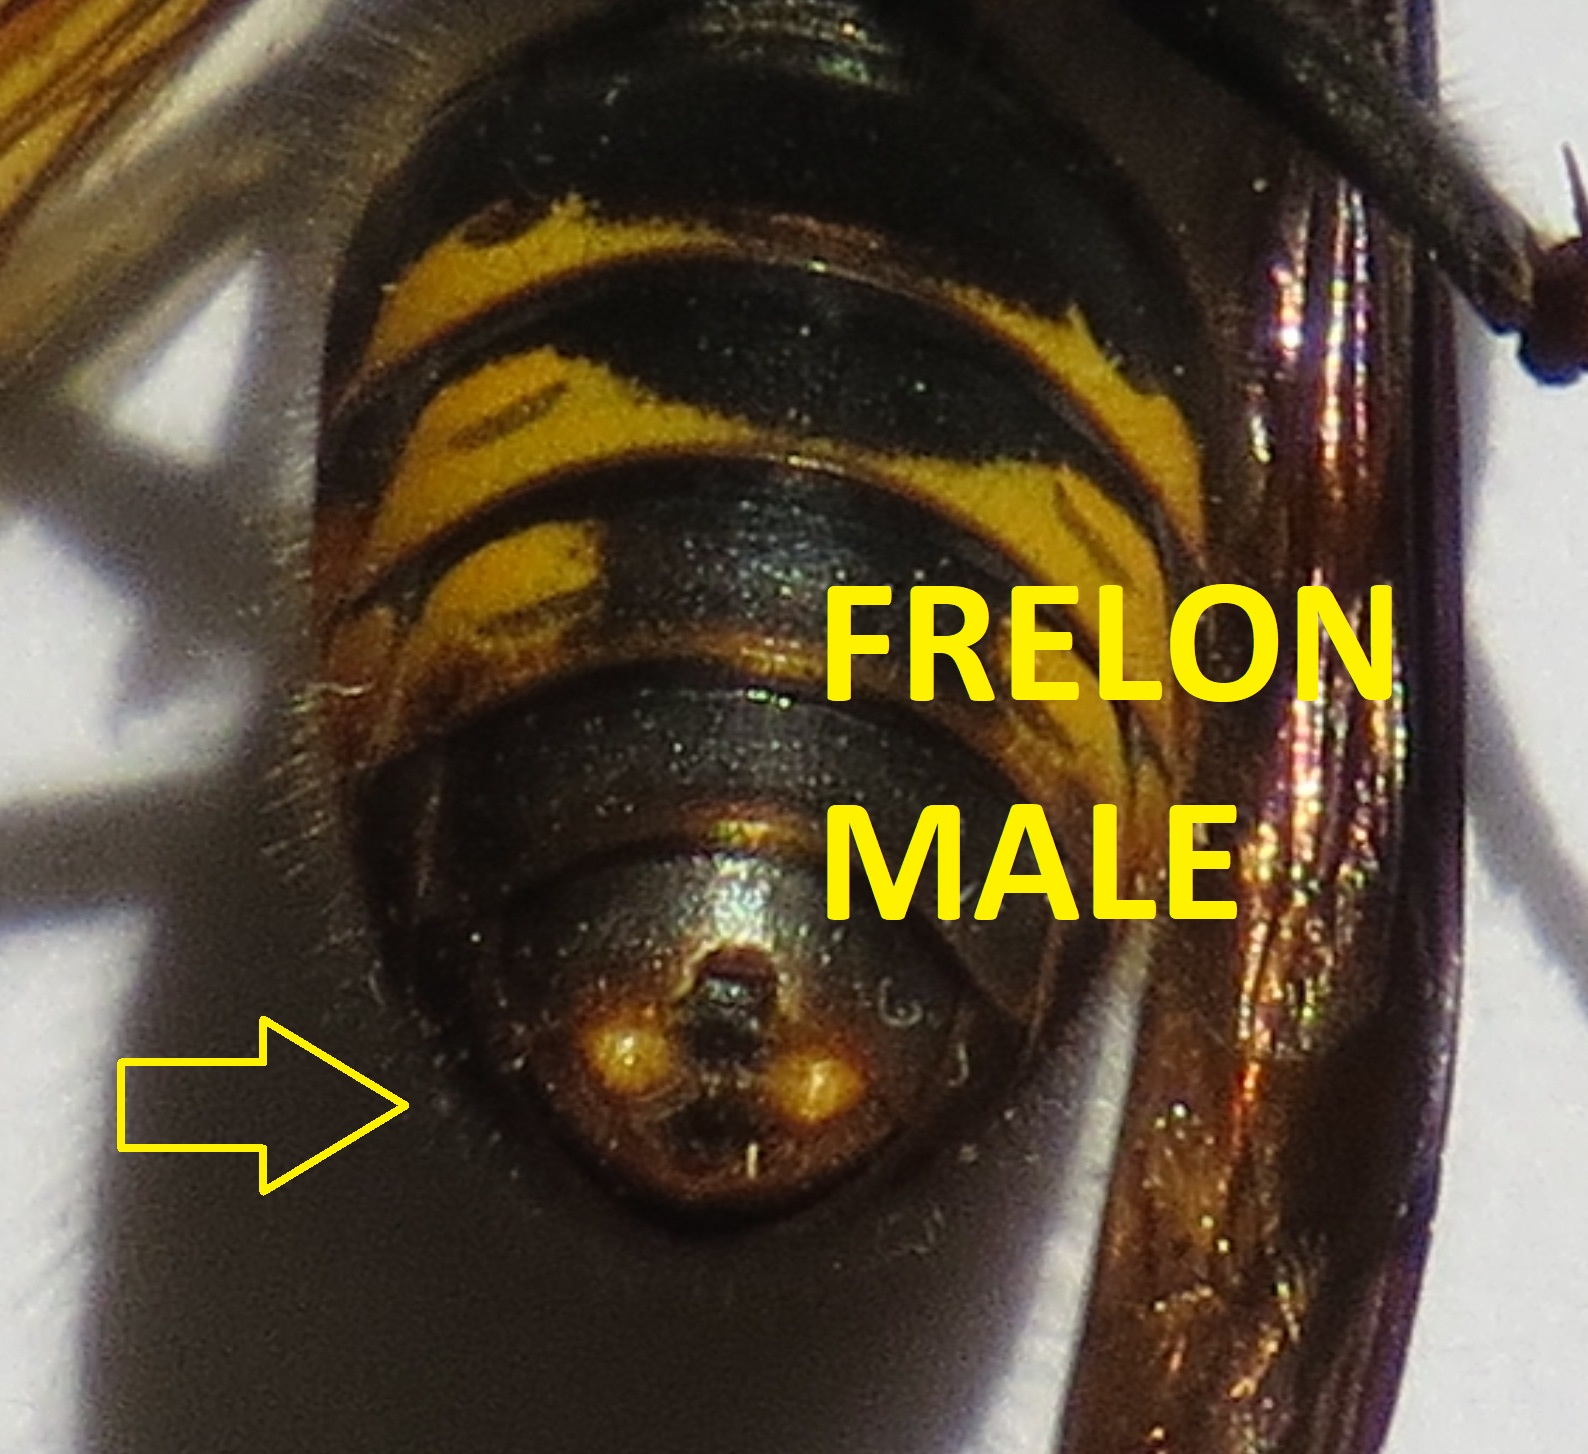 frelon asiatique male